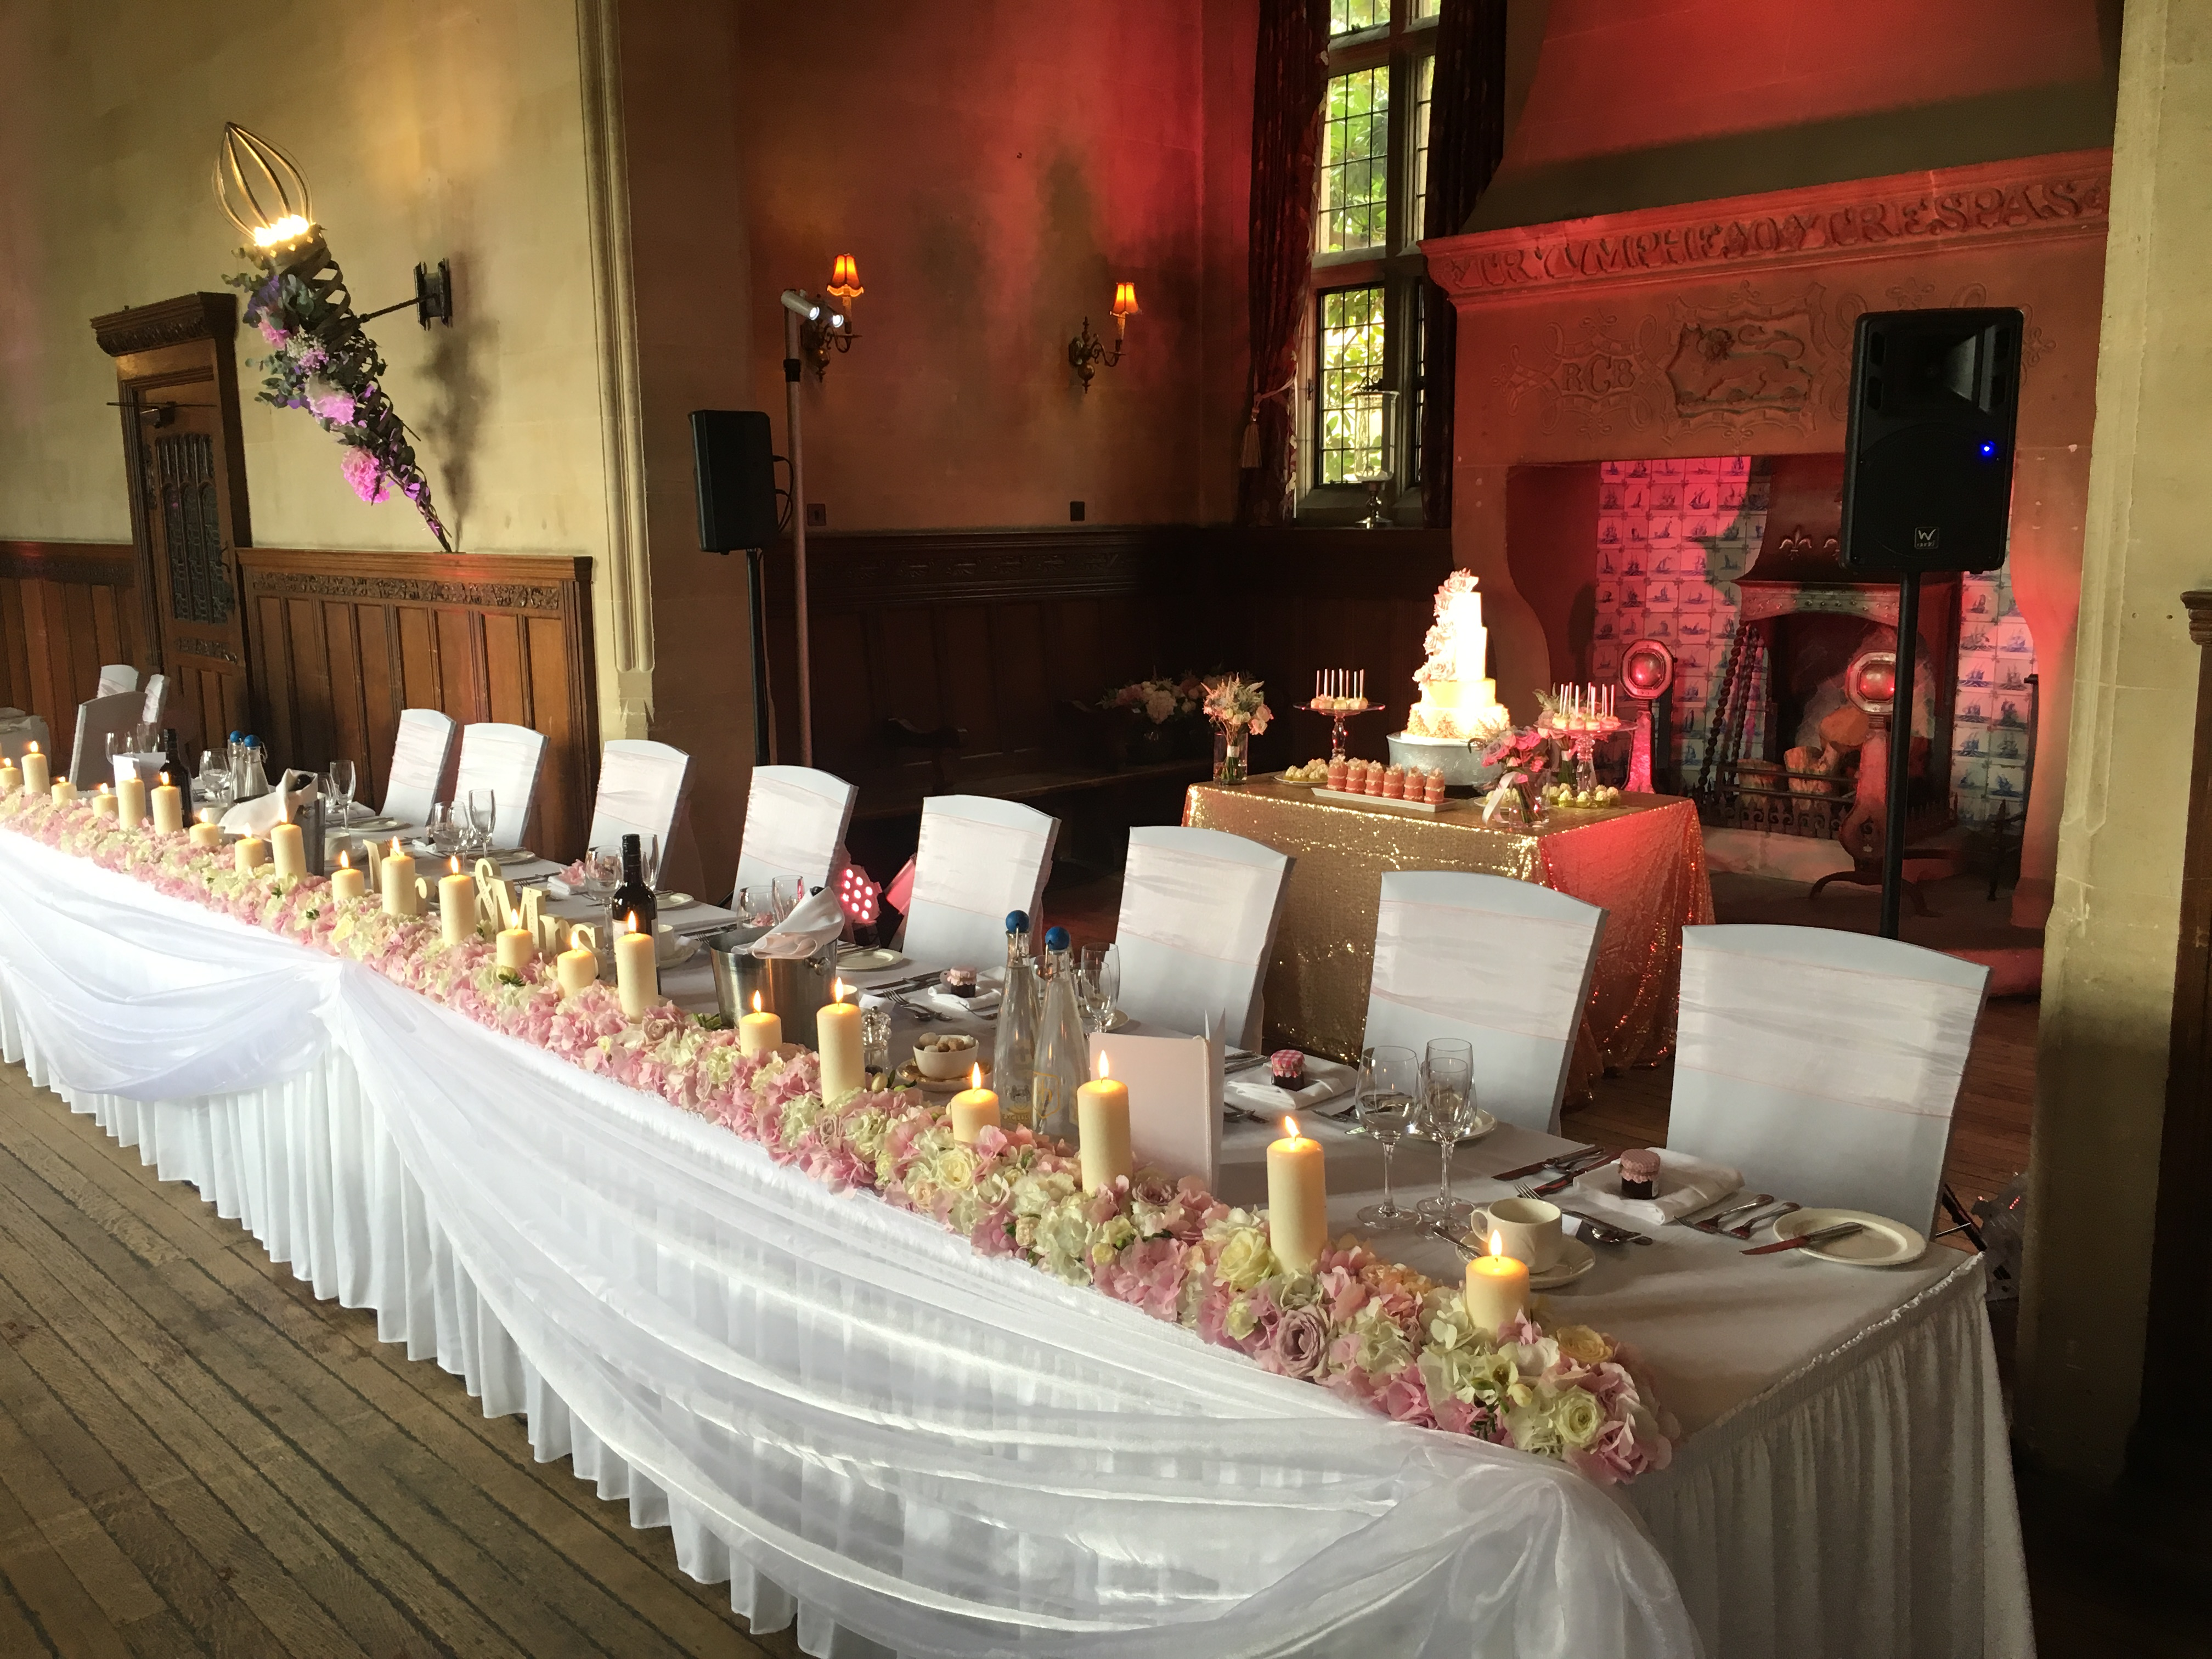 Top table lights in fire place pink